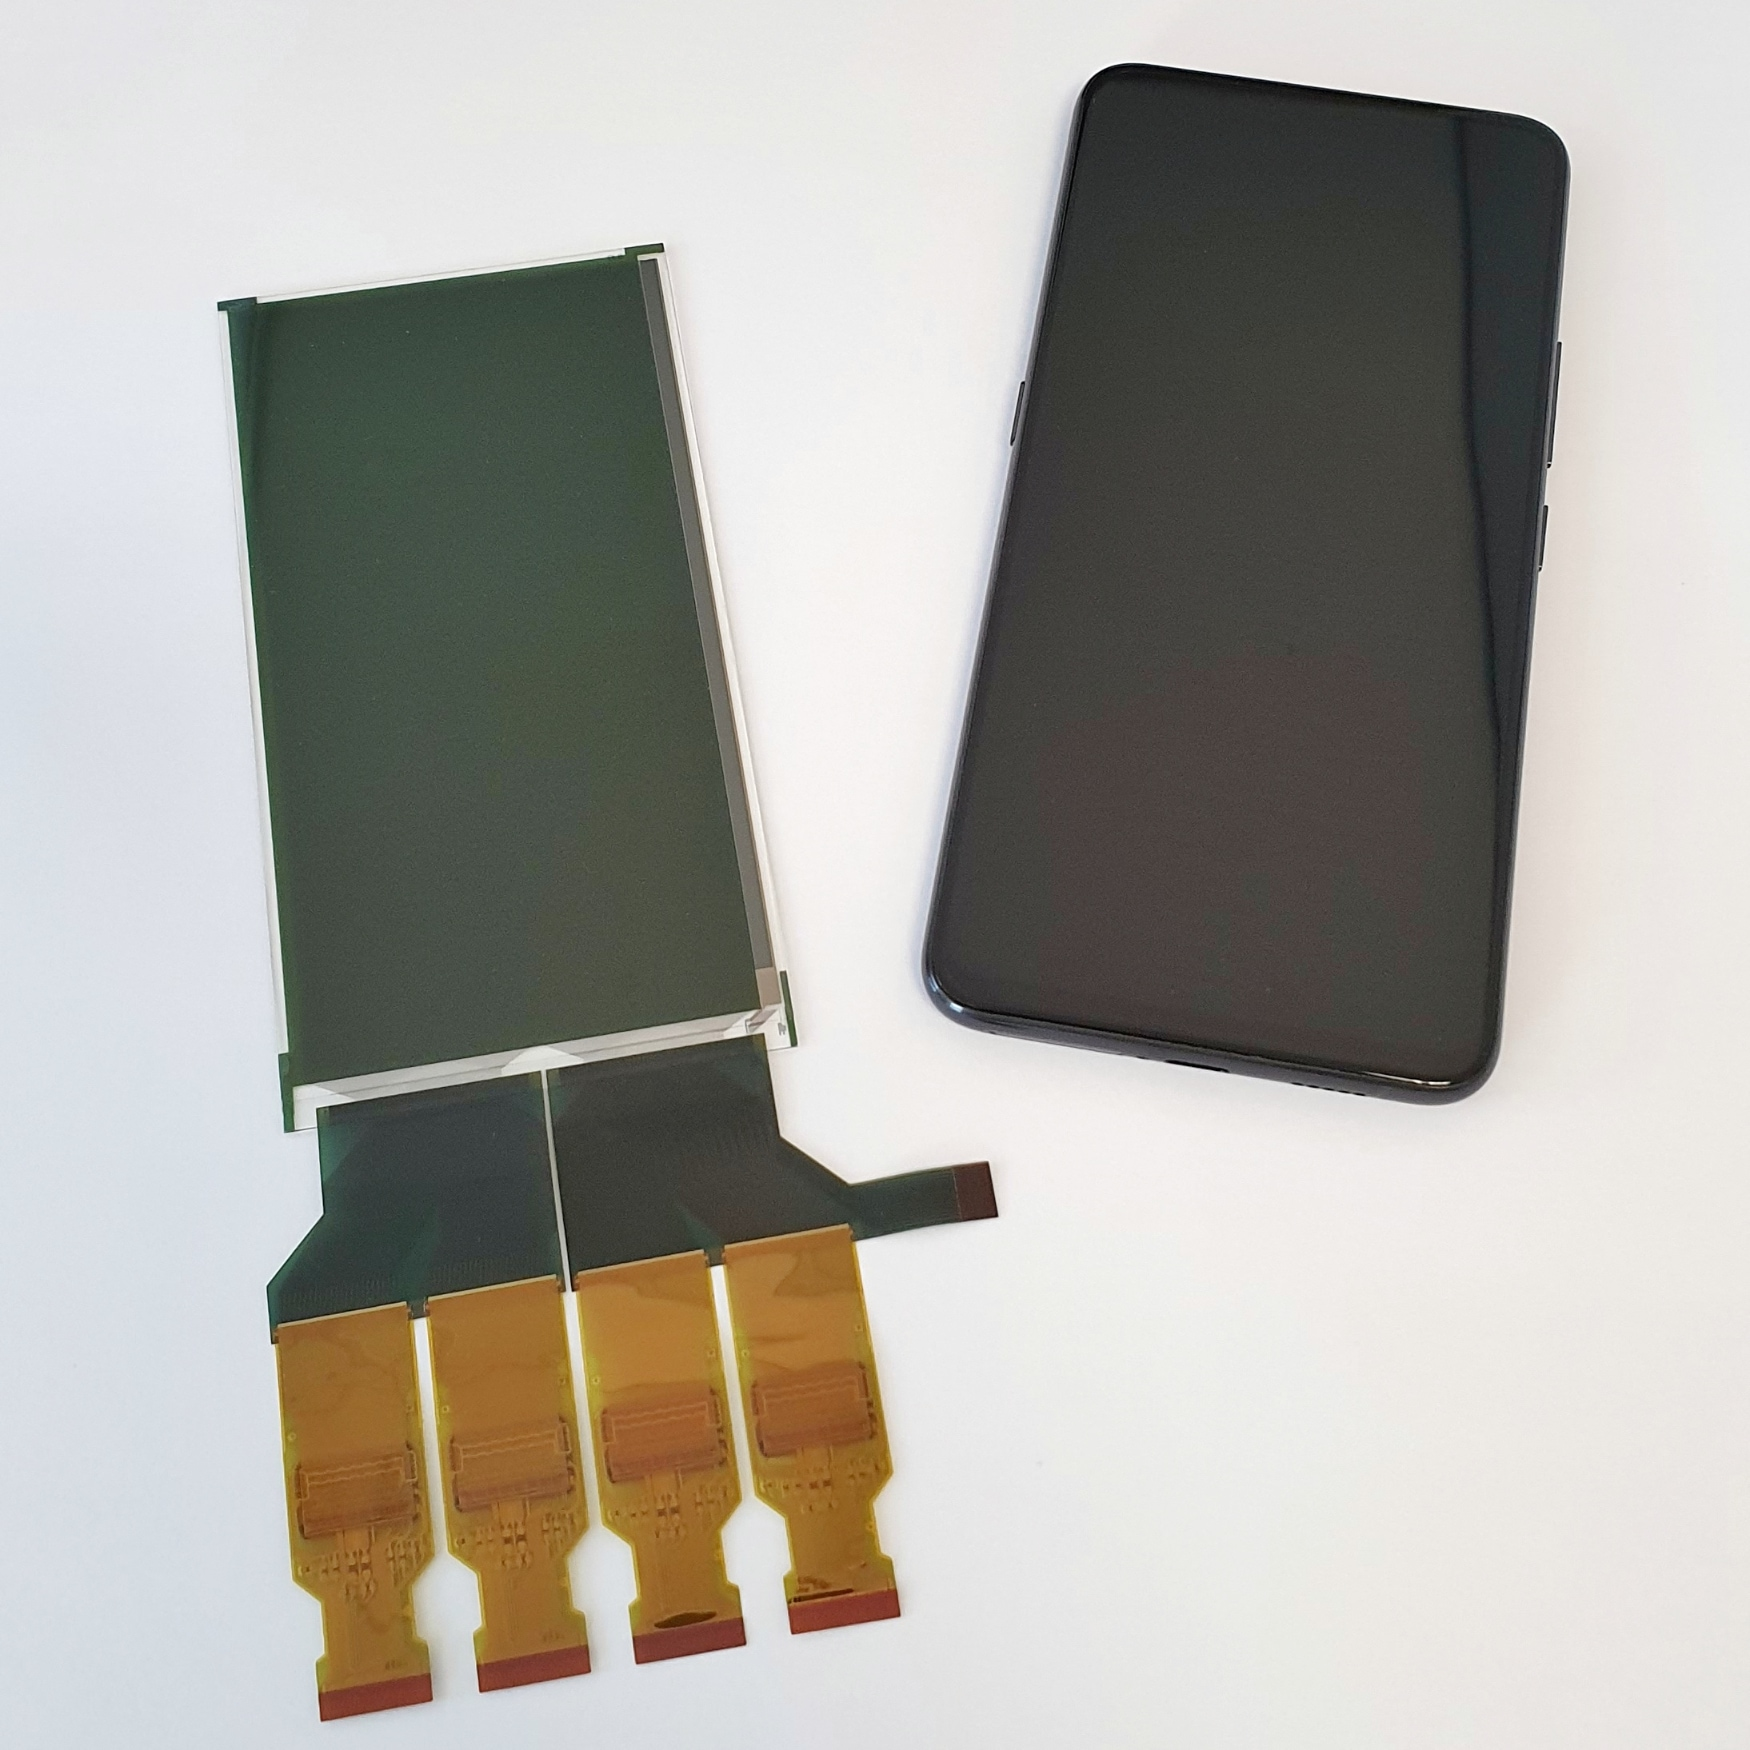 Isorg and Sumitomo Chemical Announce Partnership to Develop Organic Photodetectors